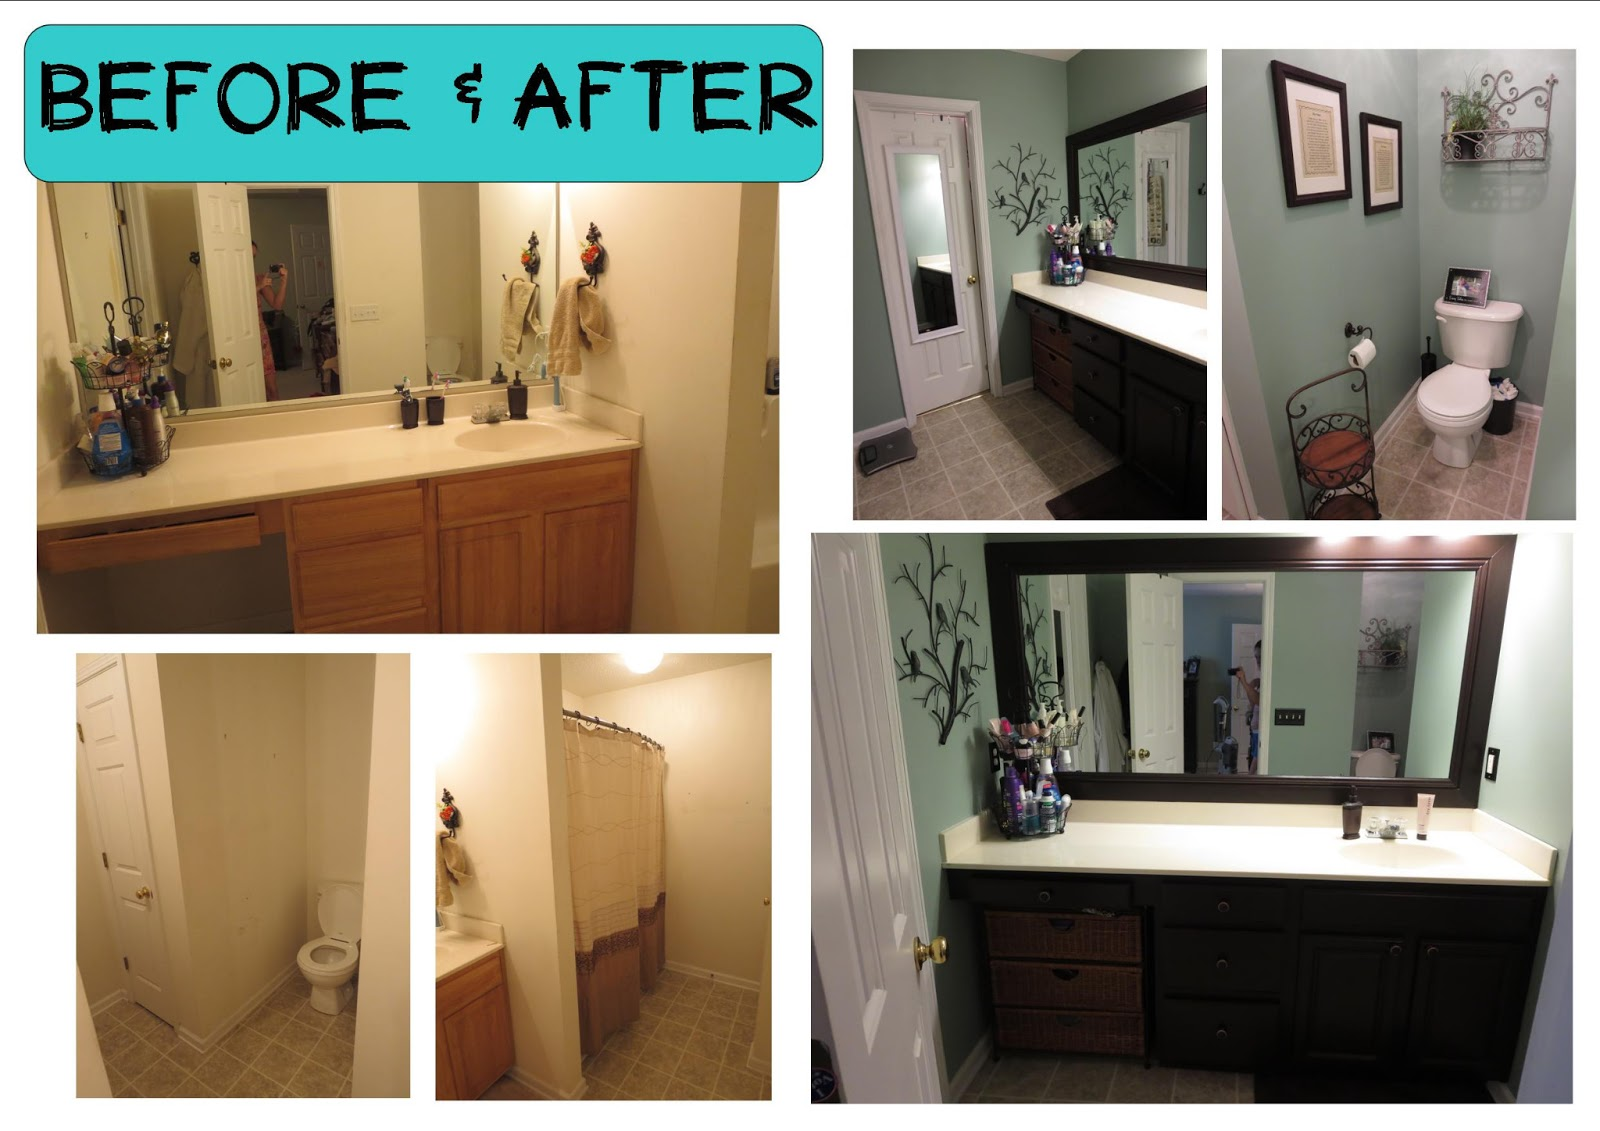 Finding fairy tales diy project 1 bathroom remodel for Diy bathroom remodel before and after